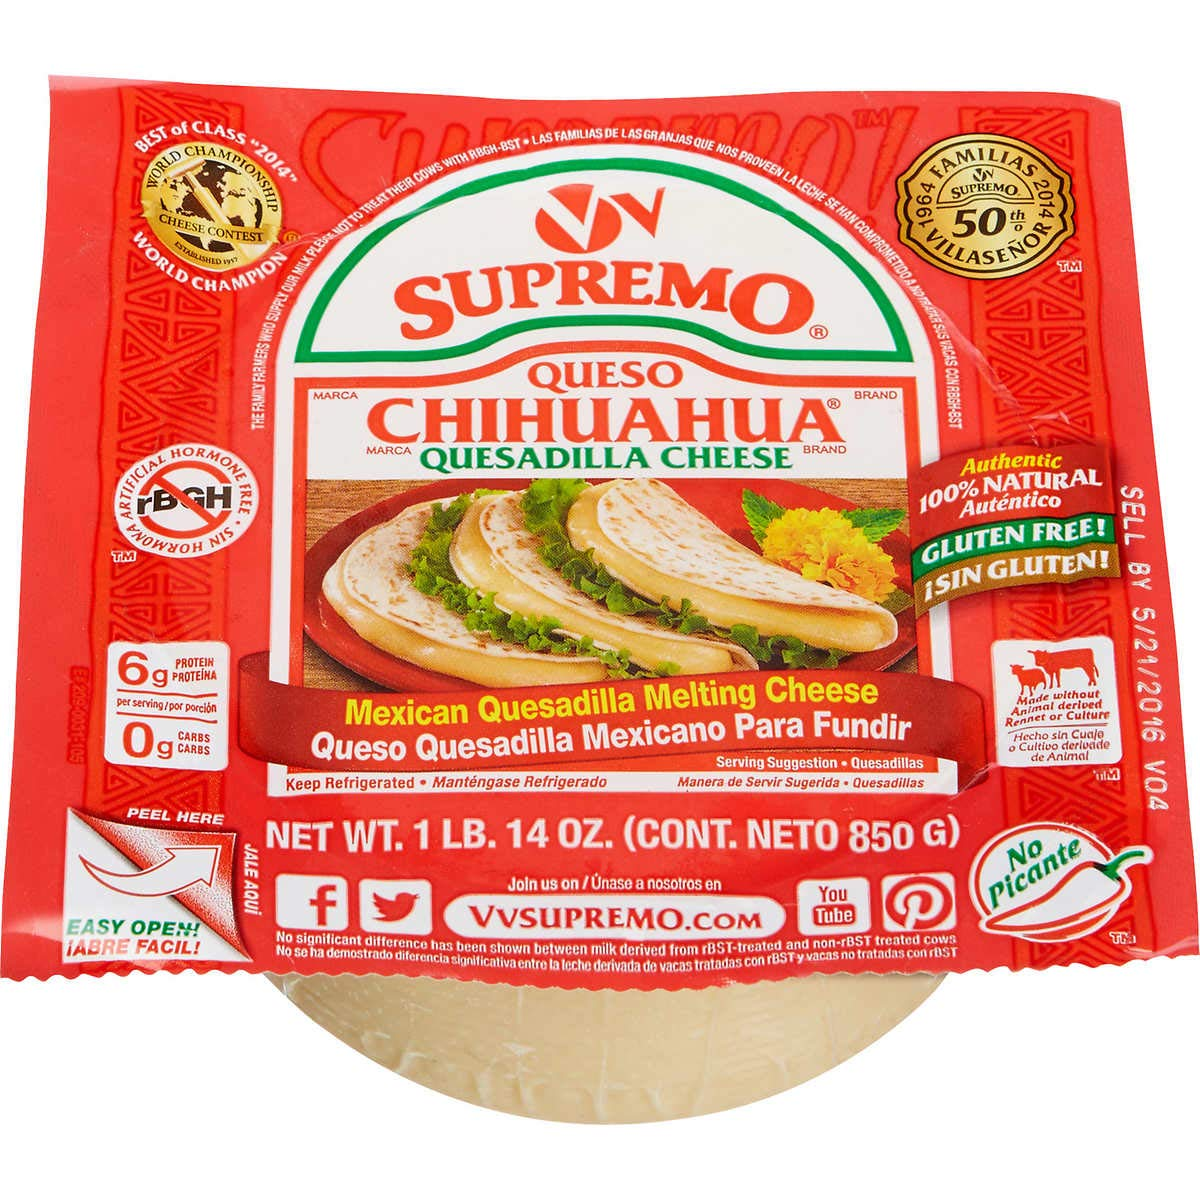 V&V Supremo Foods Queso Chihuahua Mexican Style Melting Cheese, 30 oz by V&V Supremo Foods (Image #1)